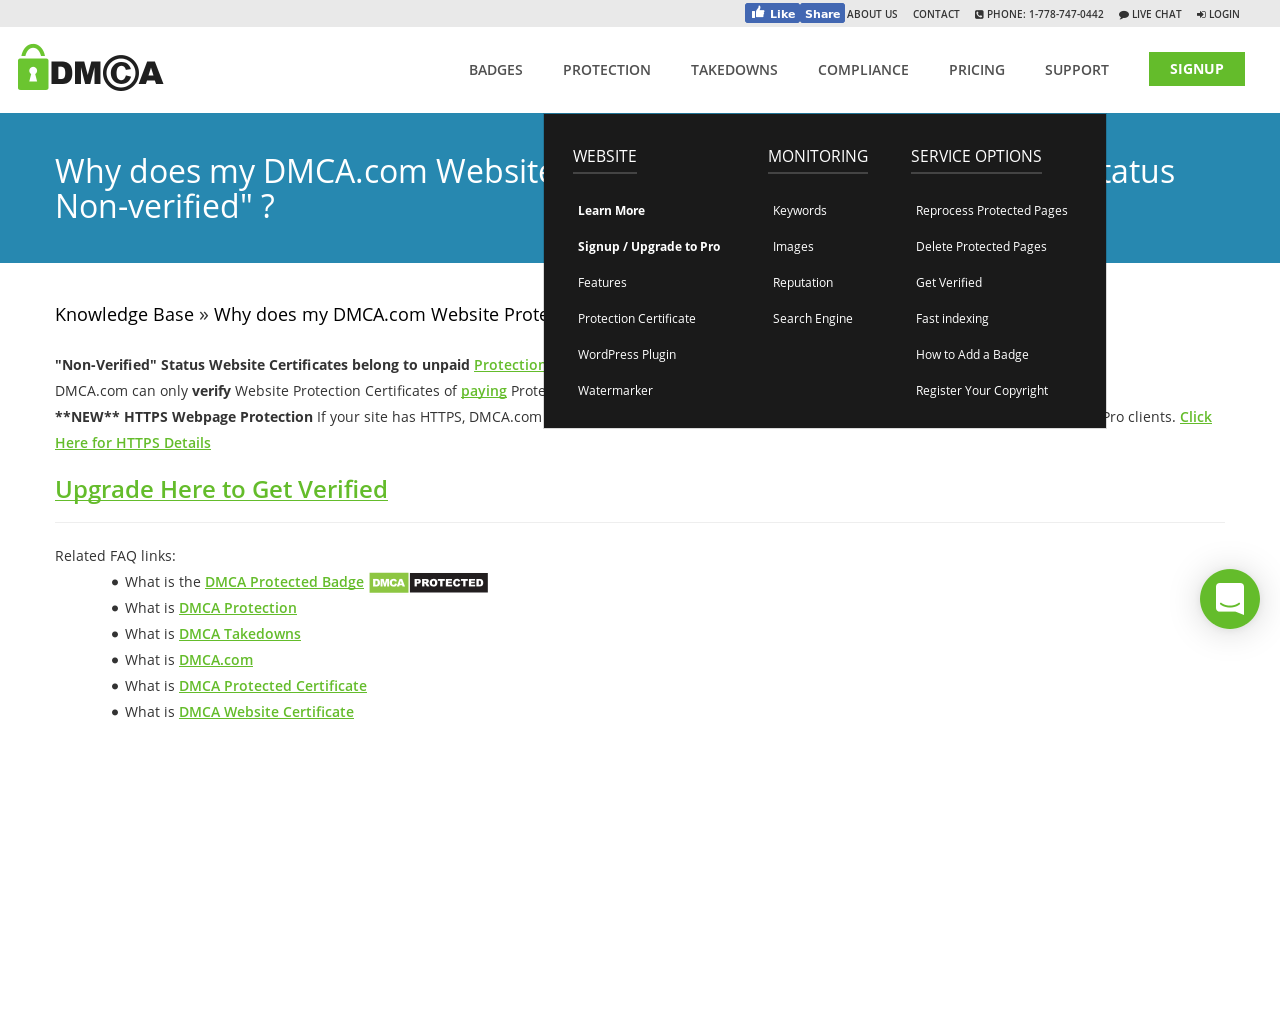 Why does my DMCA com Website Protection Certificate say